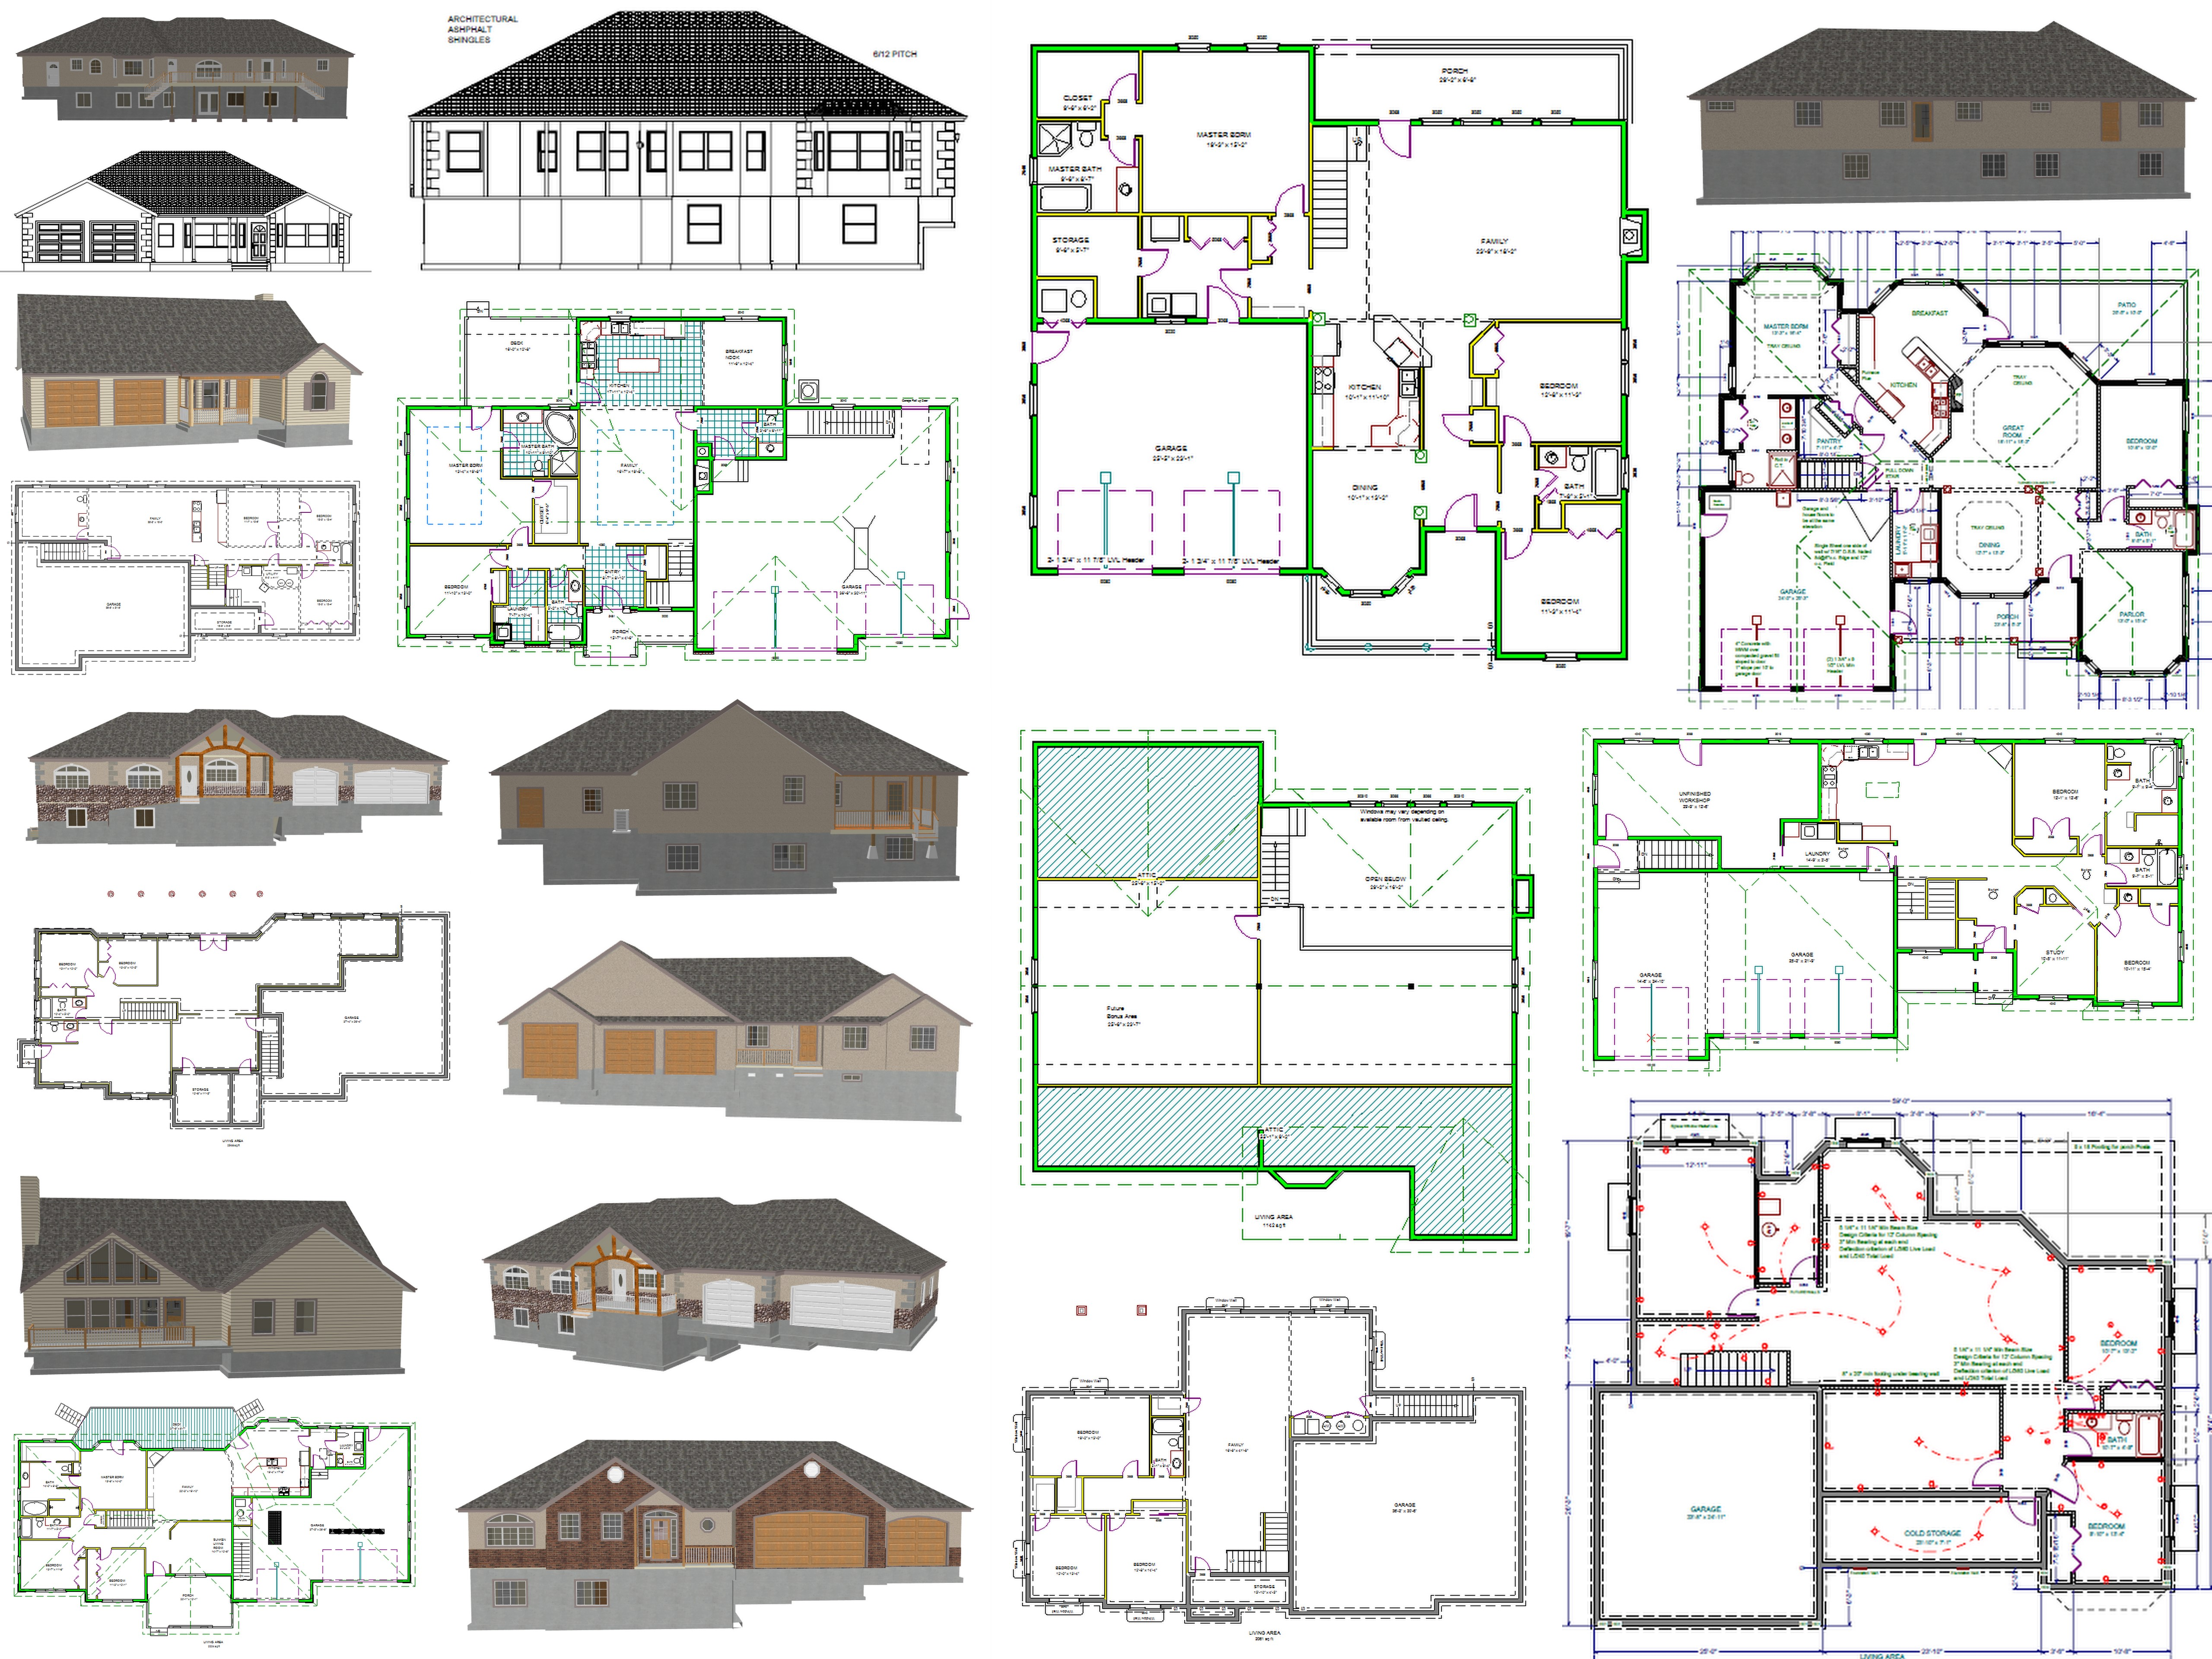 Cad house plans as low as 1 per plan Home building plans